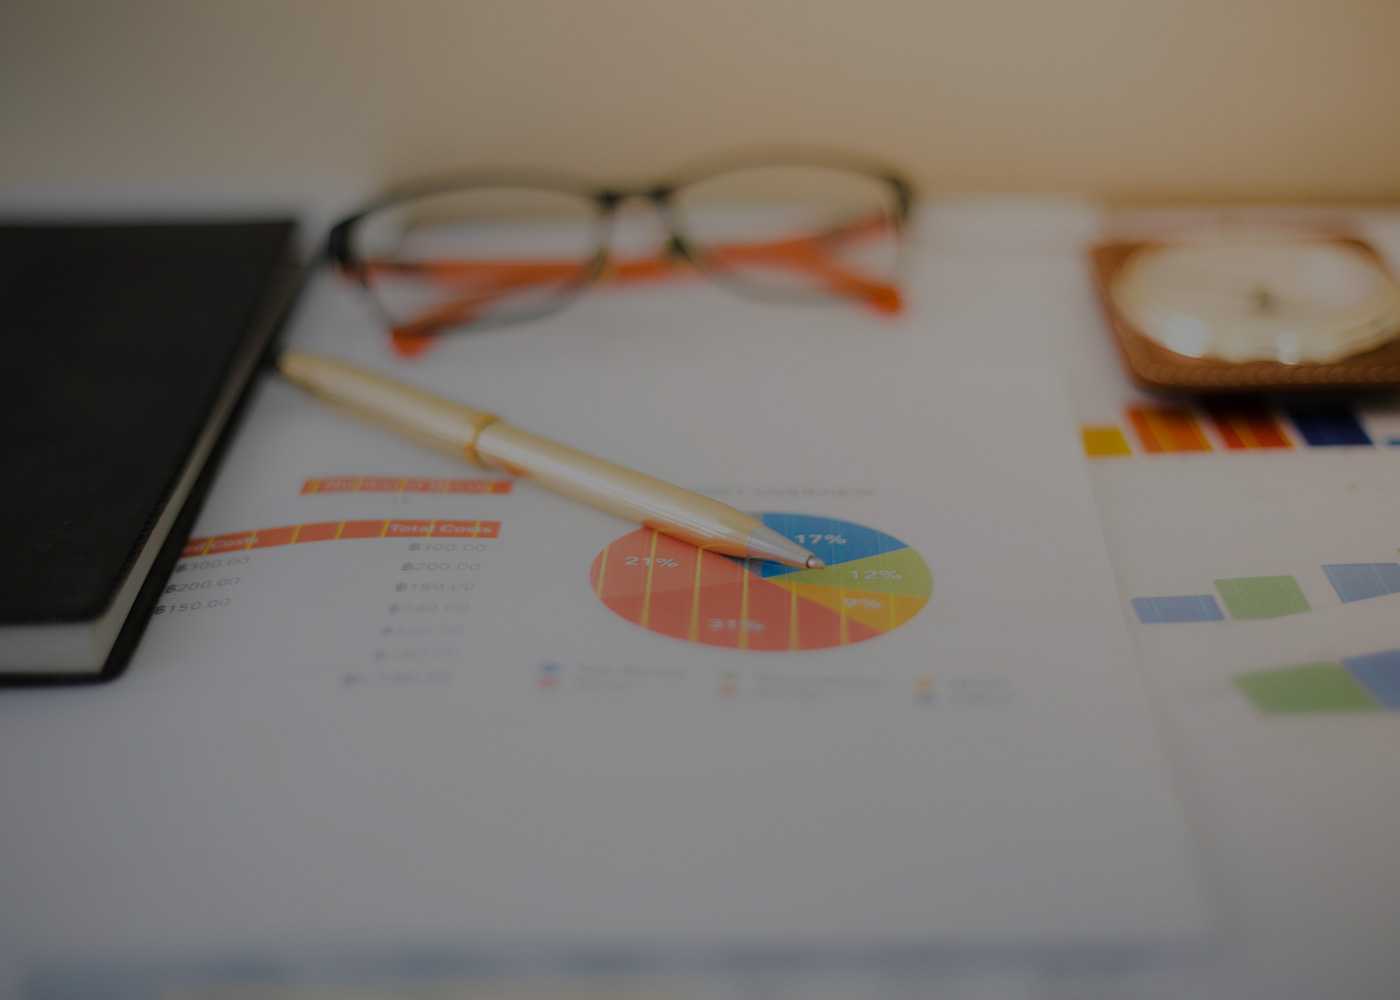 Glasses and pie chart